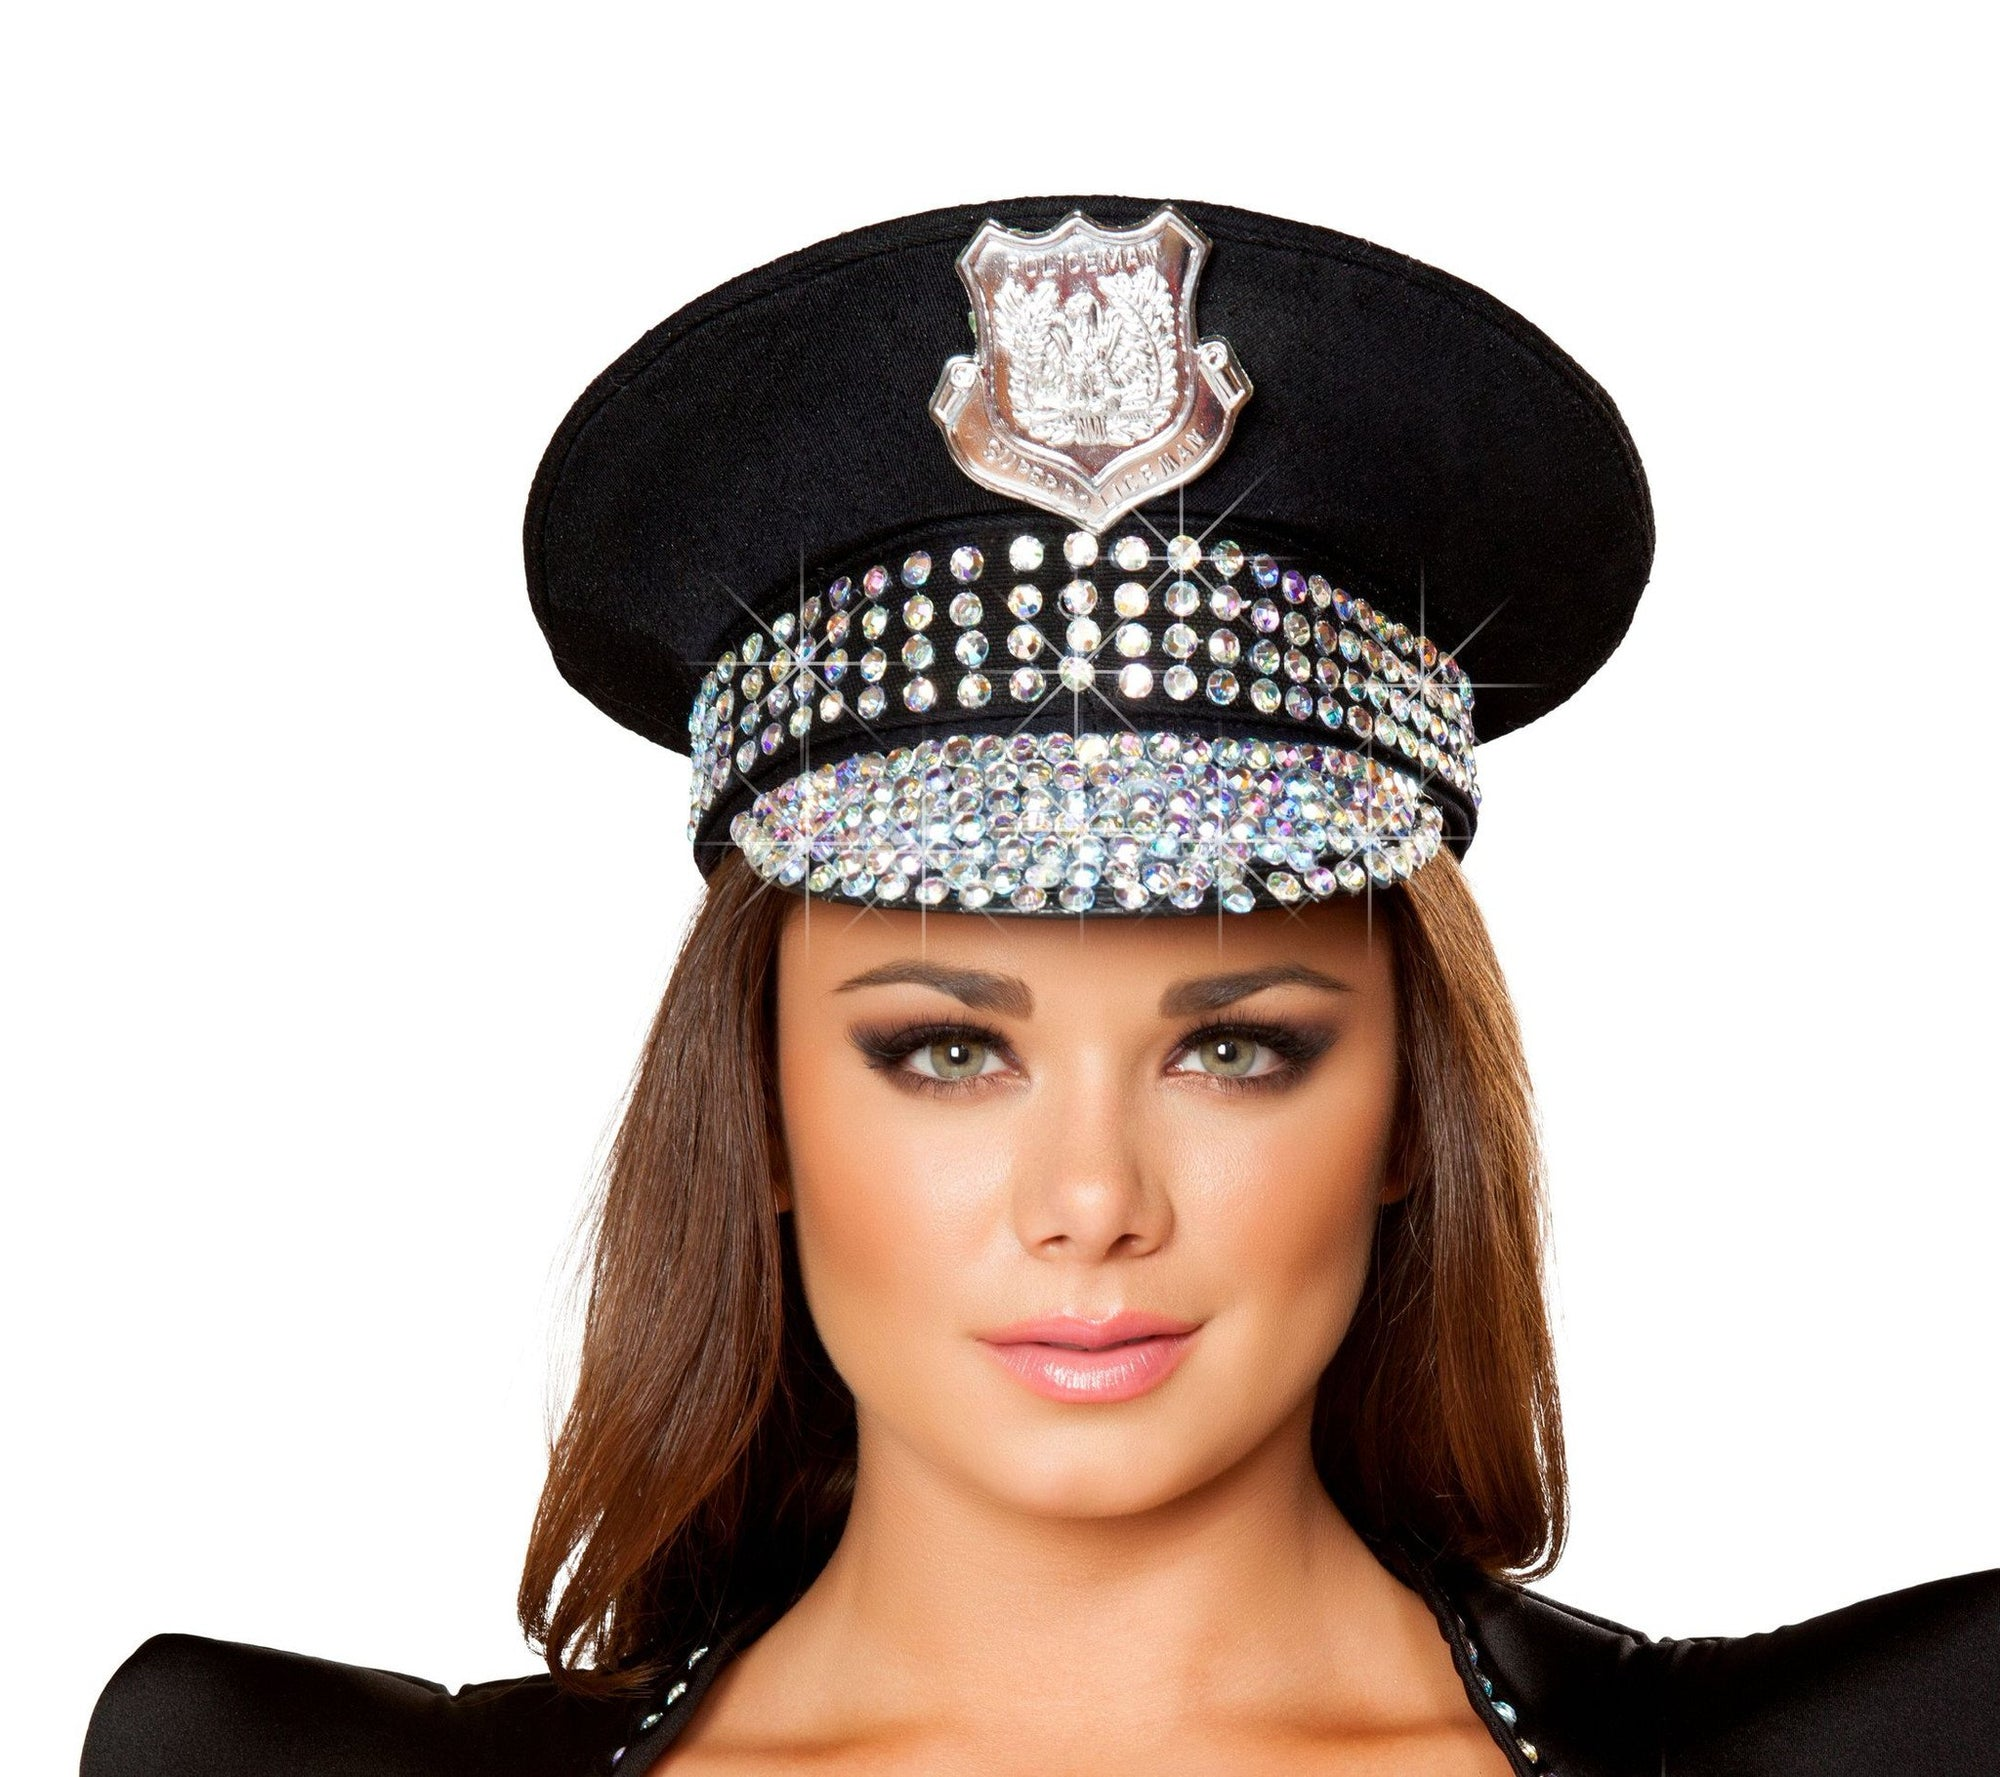 Buy H4396 Studded Police Hat from Rave Fix for $37.50 with Same Day Shipping Designed by Roma Costume H4396-AS-O/S